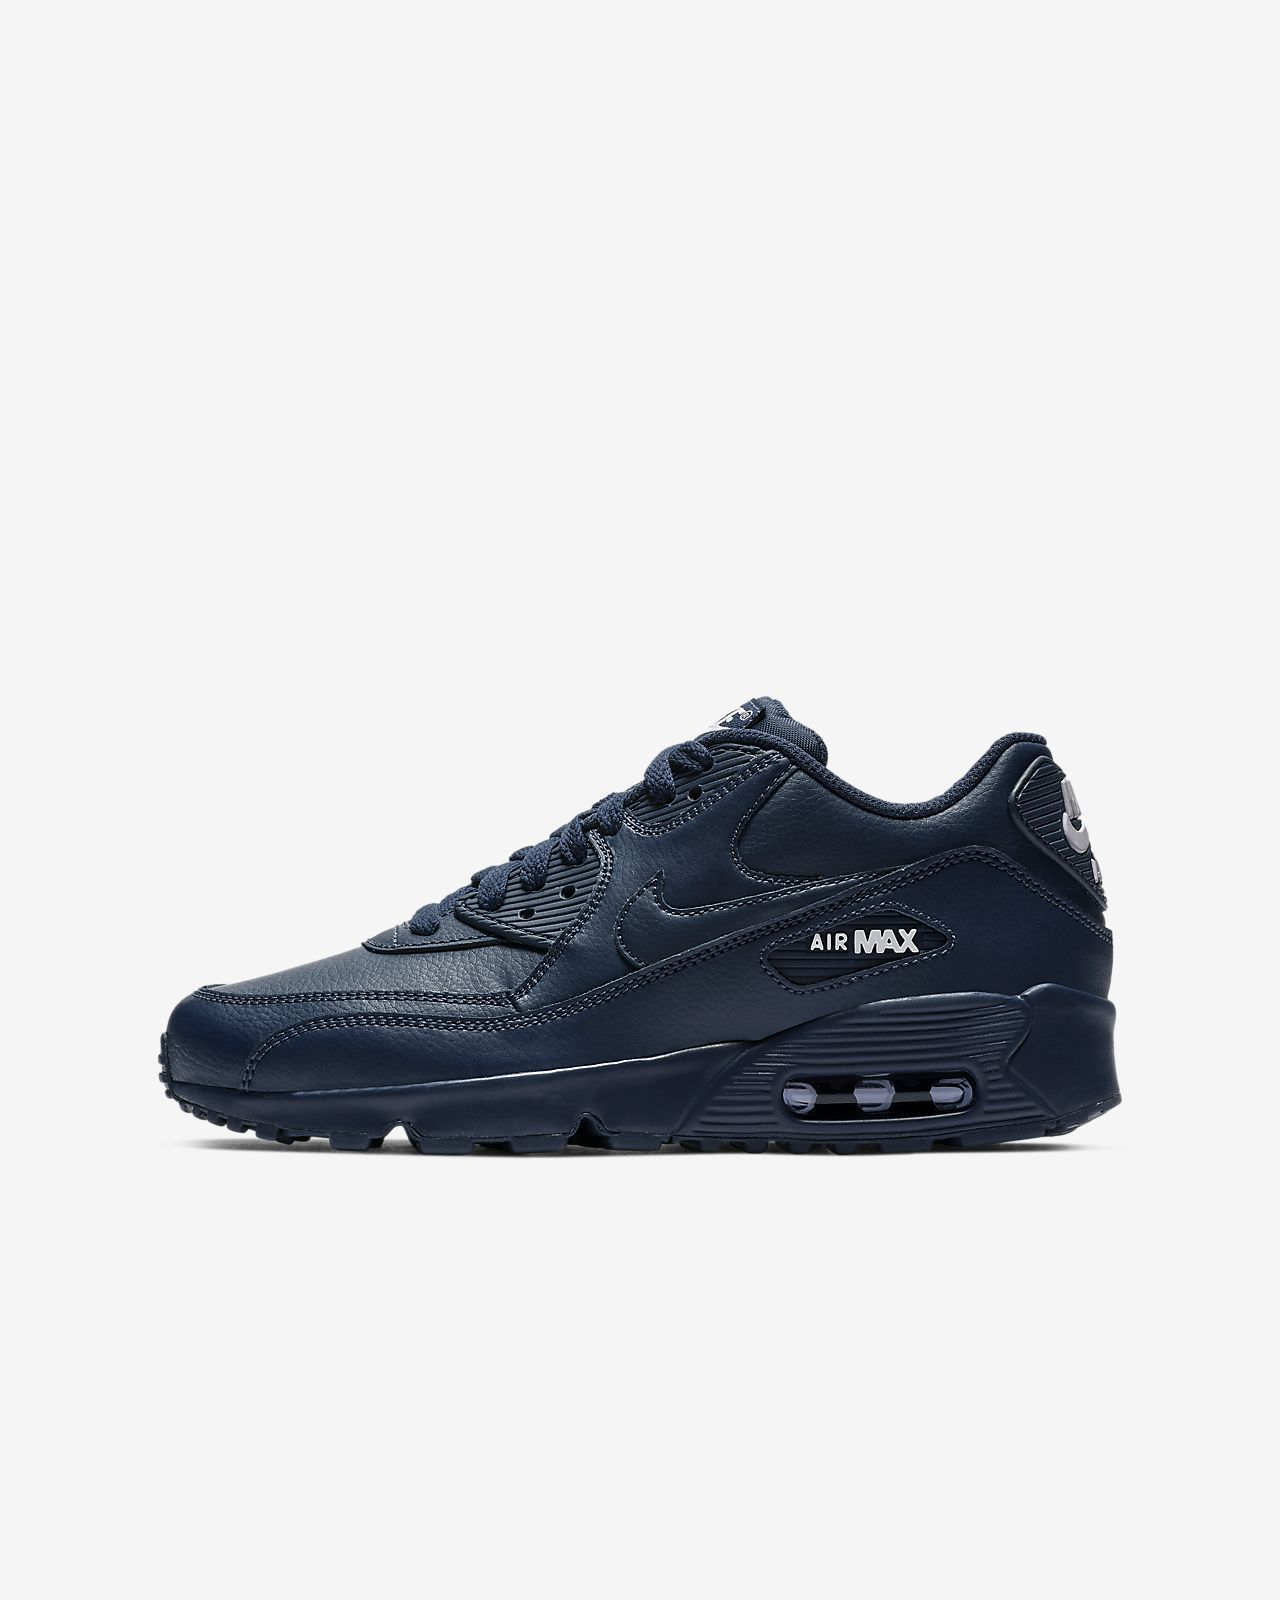 finest selection f26be 9c2e0 Nike Air Max 90 Leather Schuh für ältere Kinder